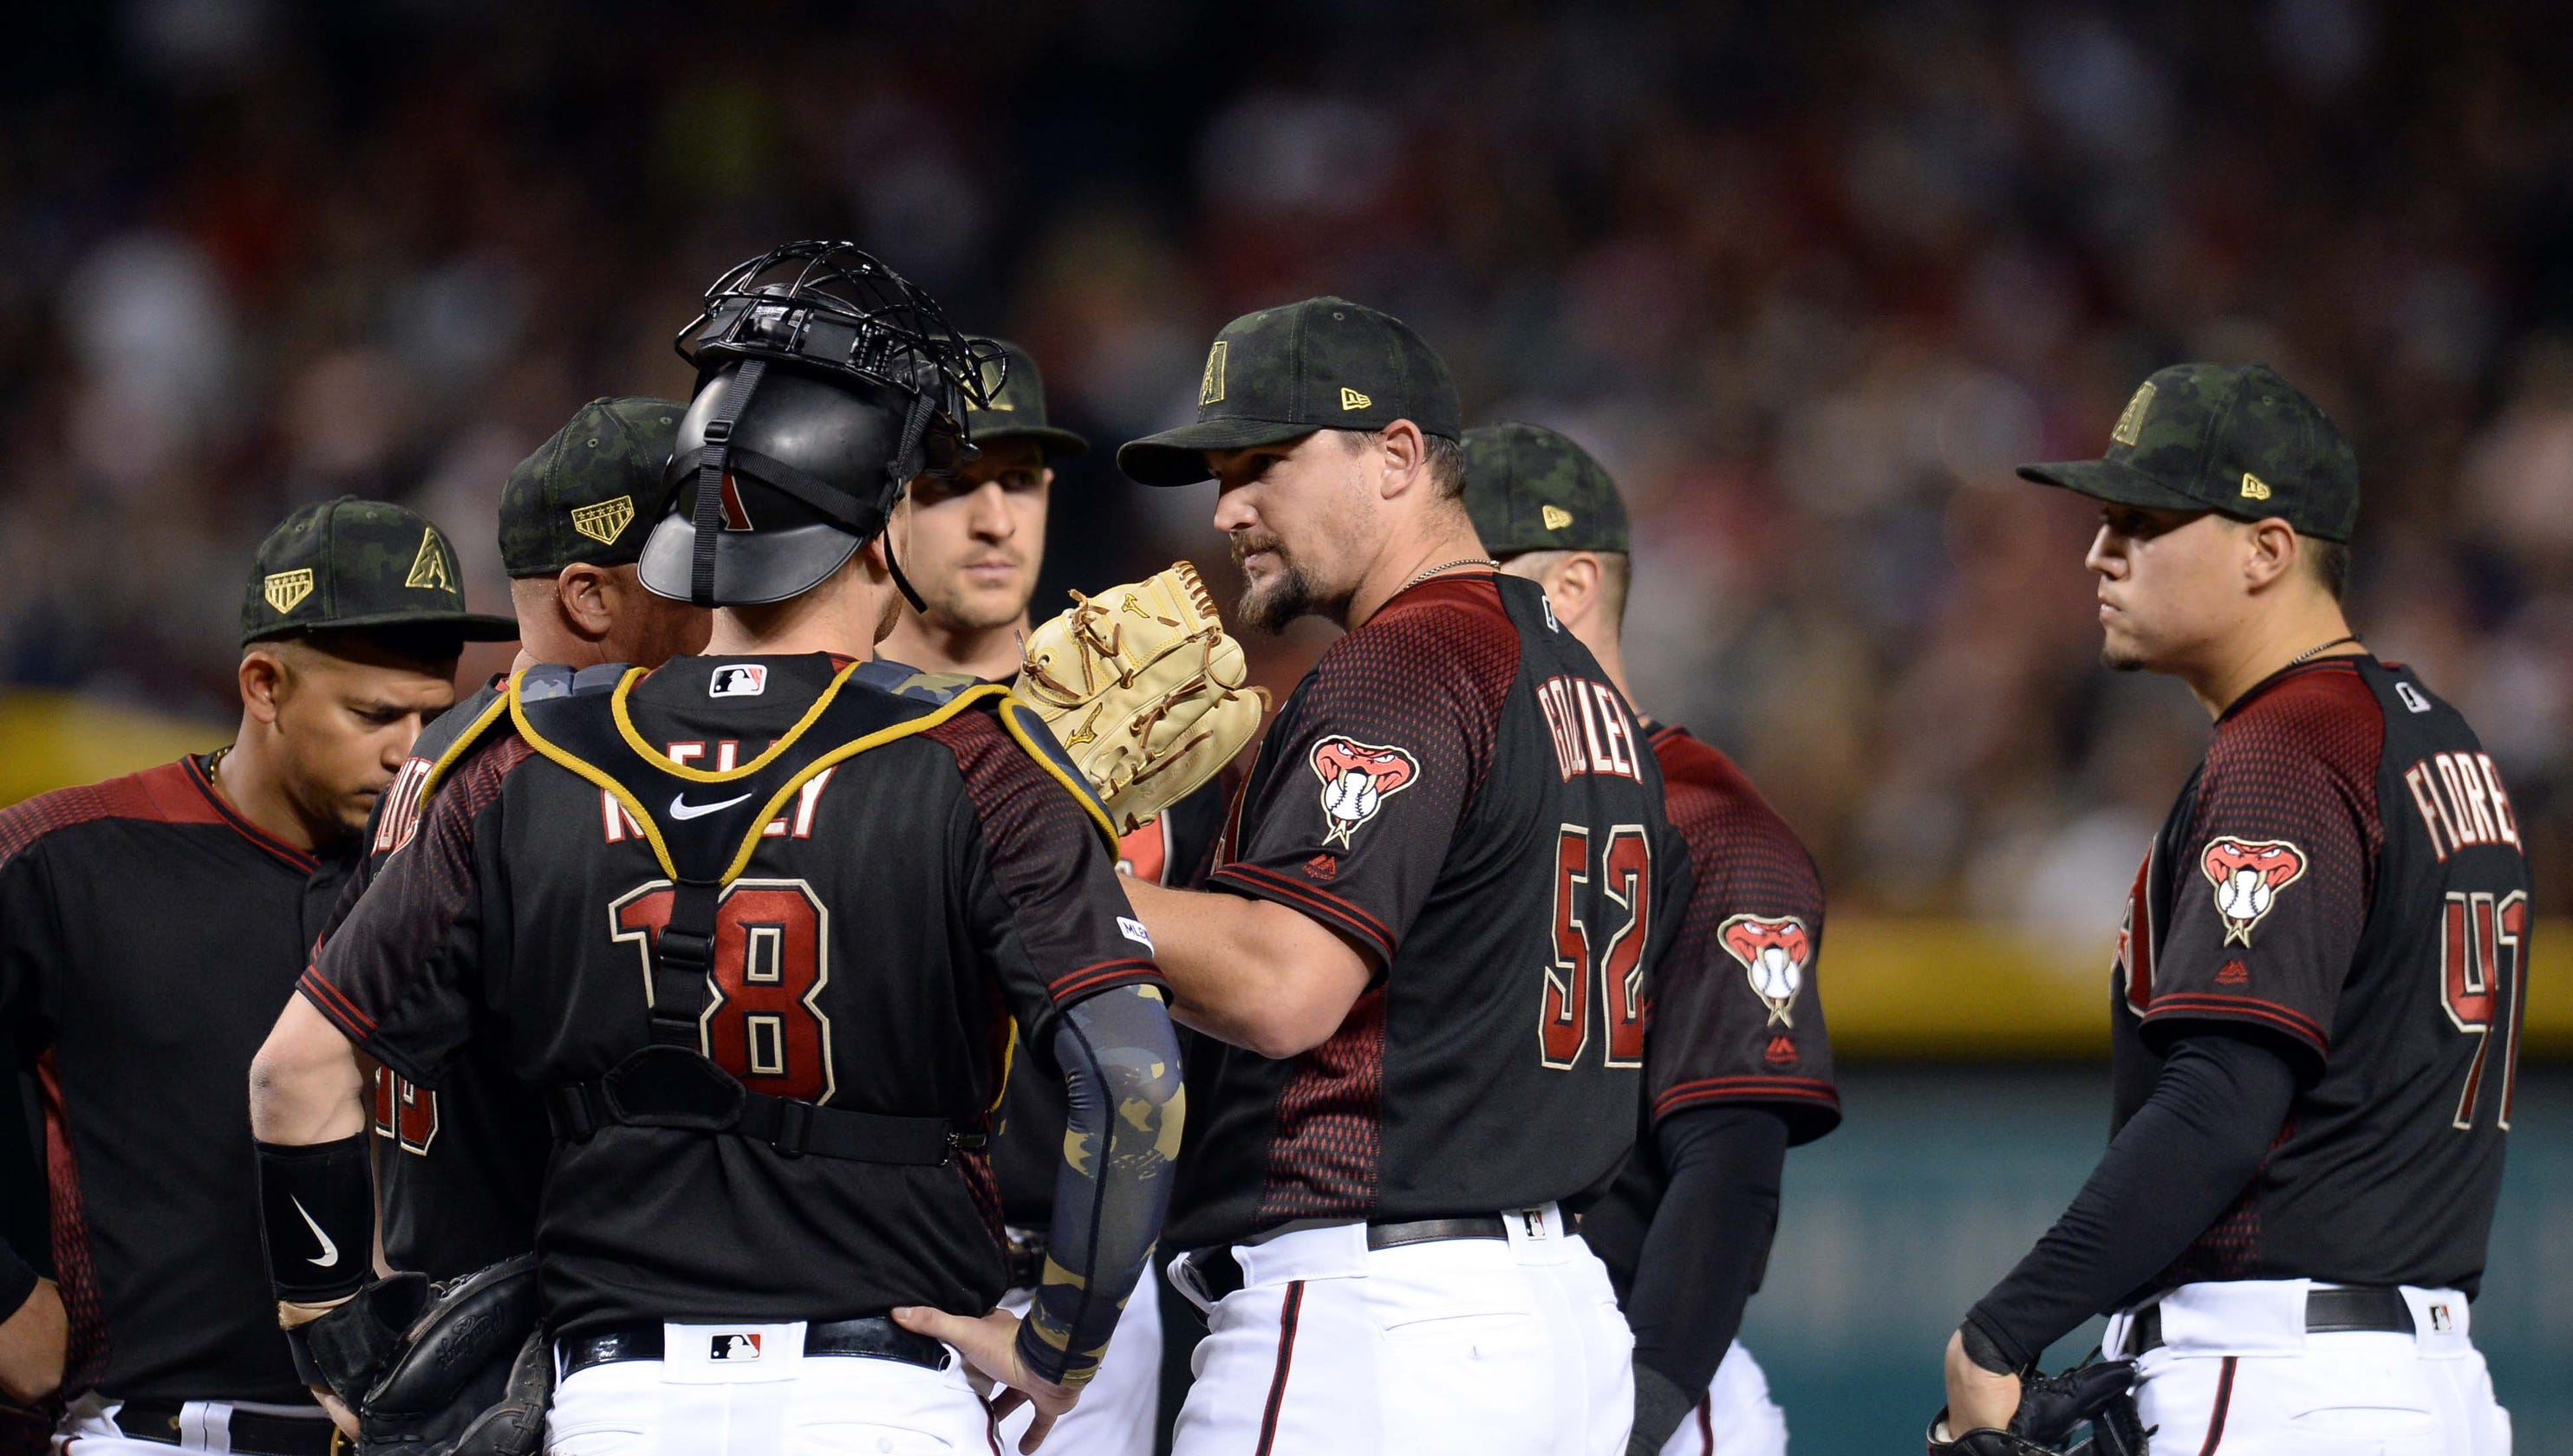 Zack Godley's Struggles Continue As Diamondbacks Fall To Giants